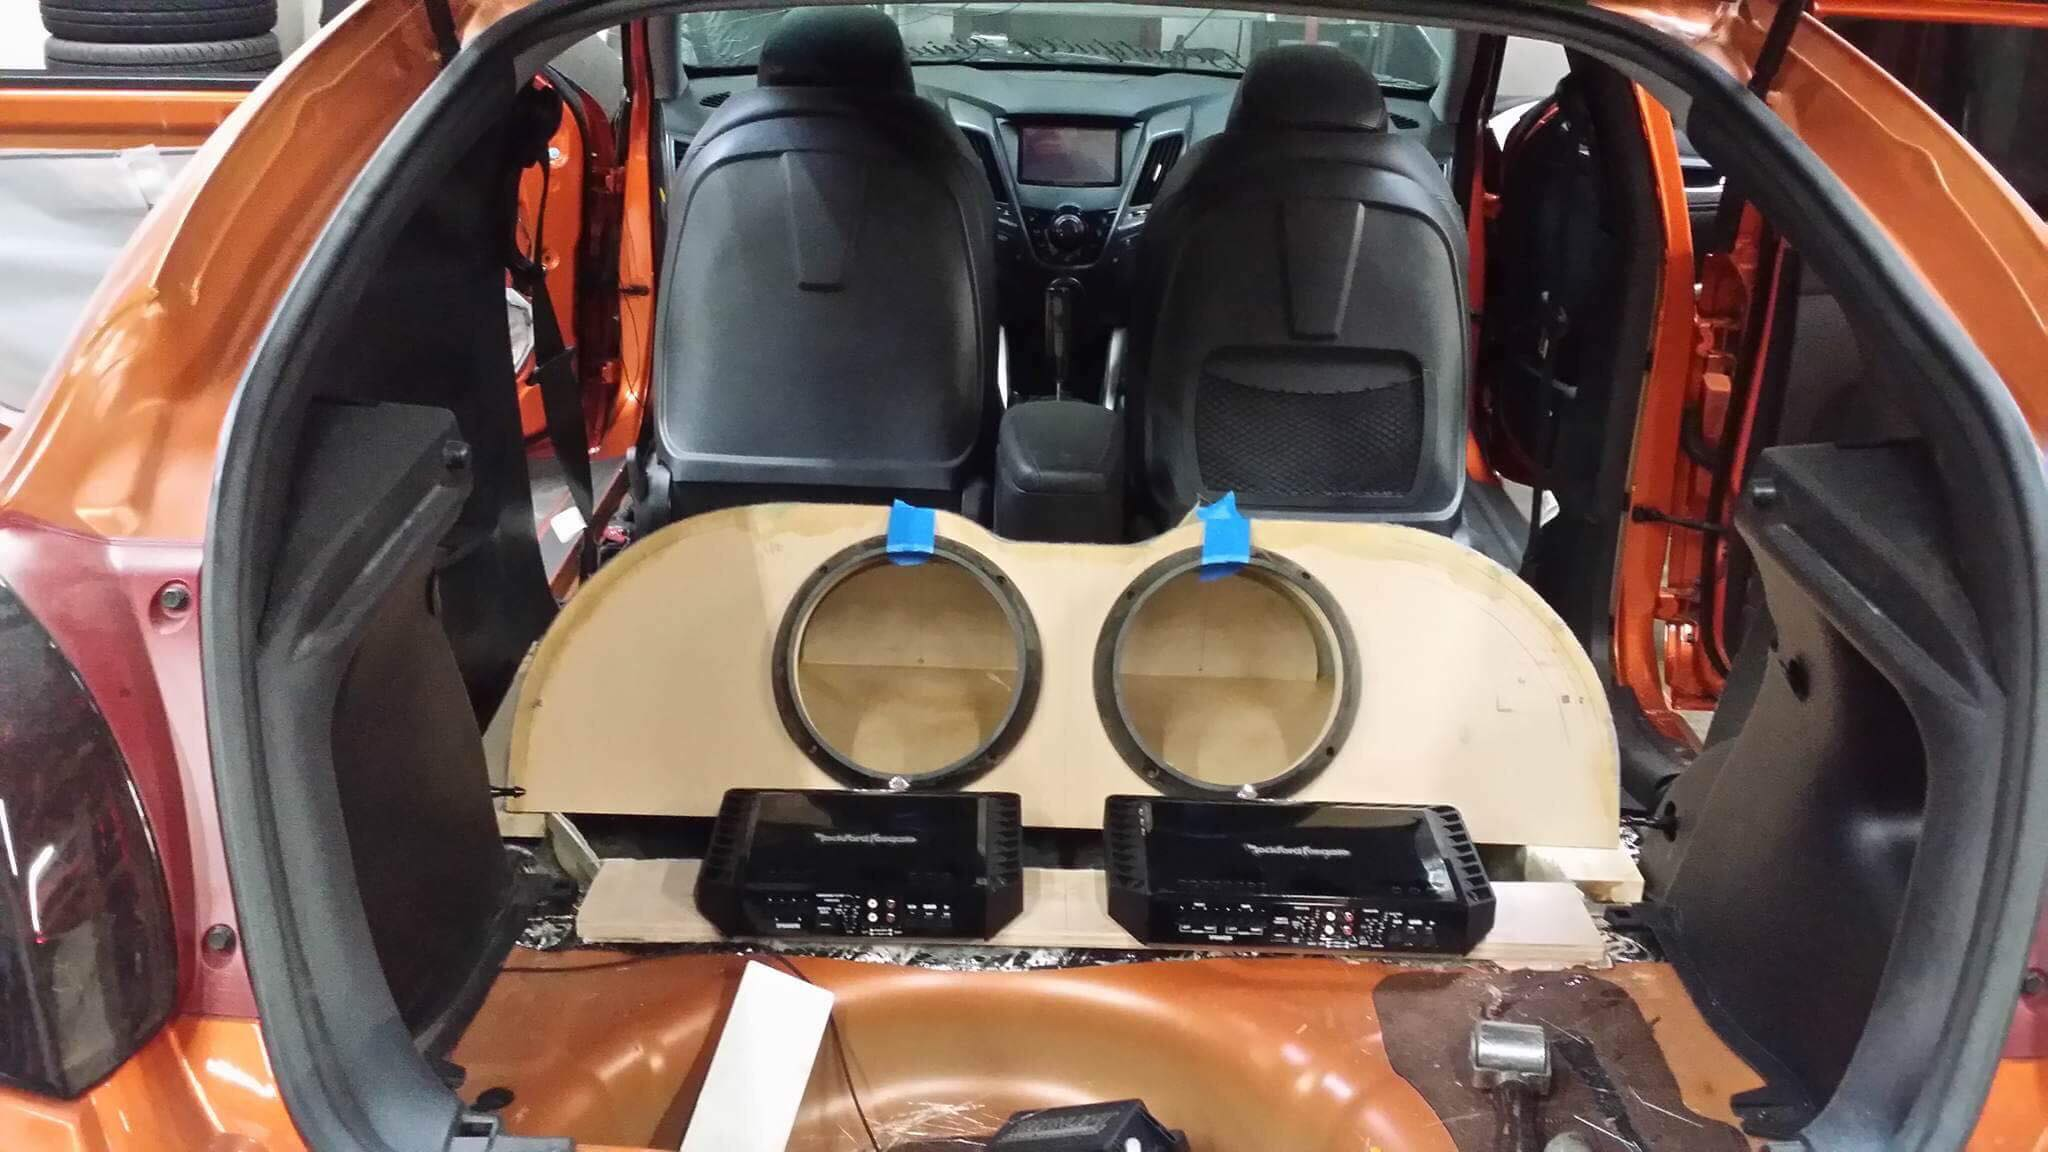 06 Installation Rescue Infinite Auto Design Hyundai Veloster Car Audio Air Install pasmag